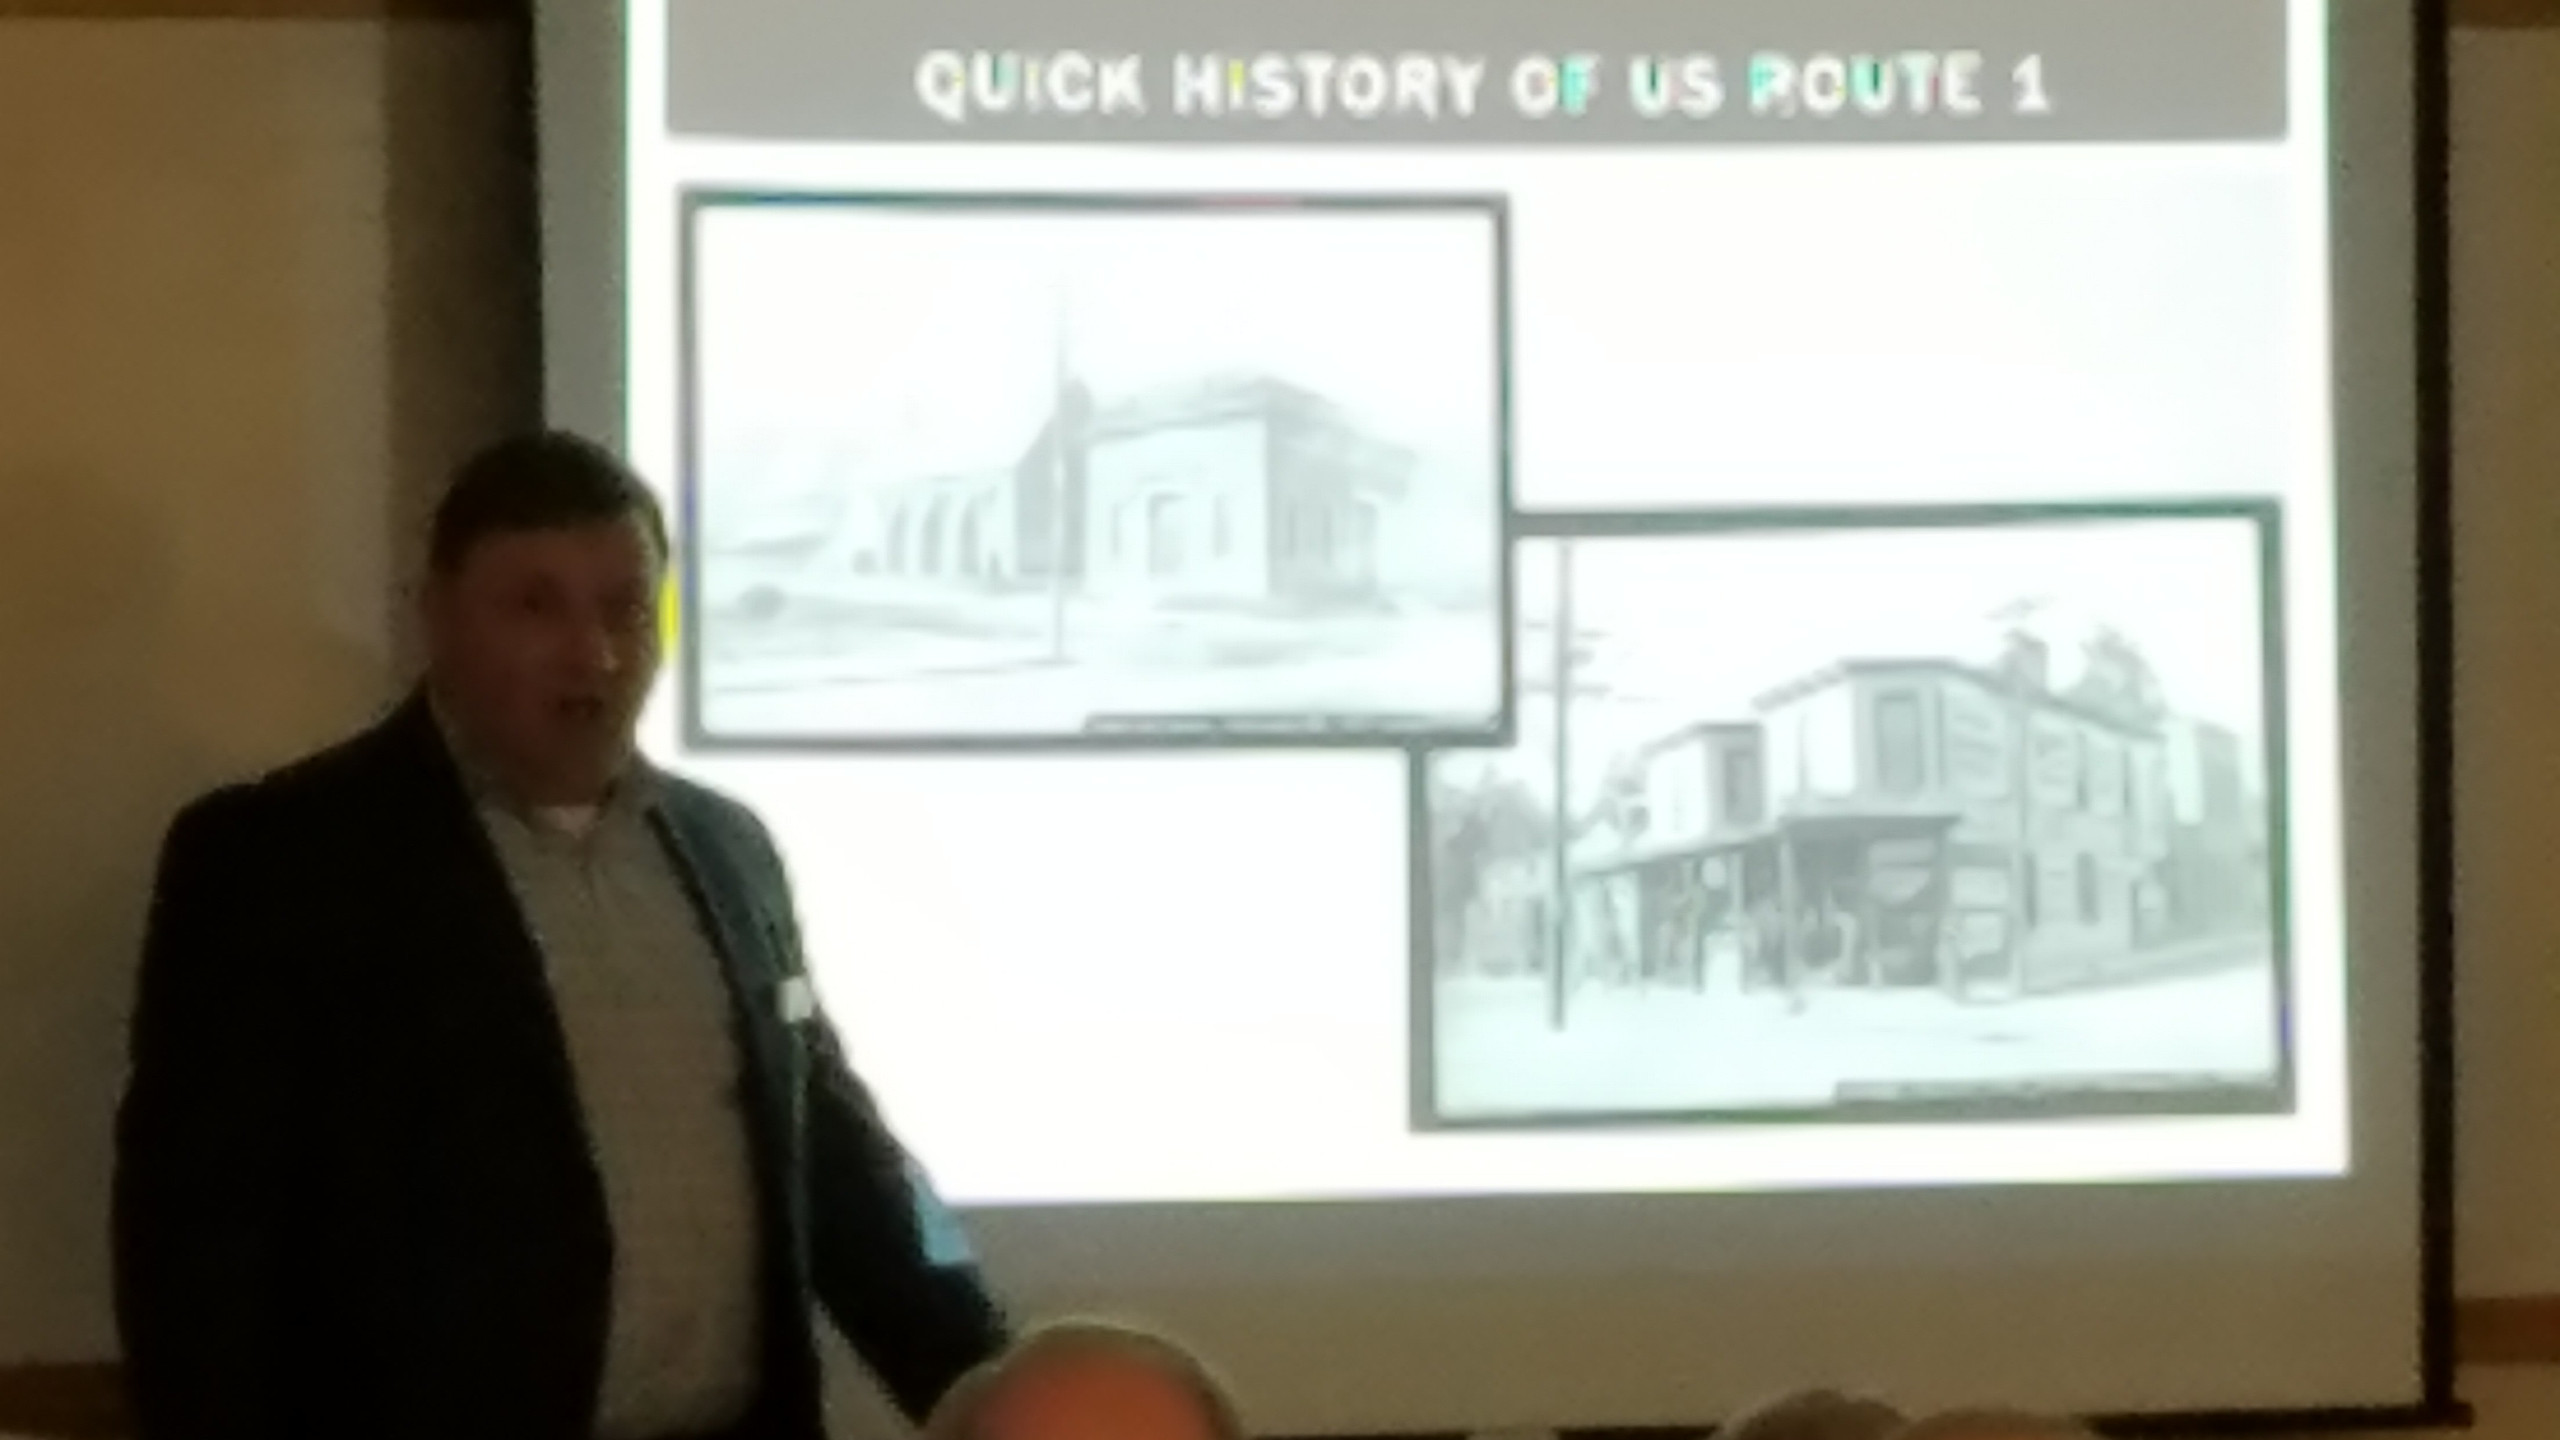 Marcavitch discusses Route 1